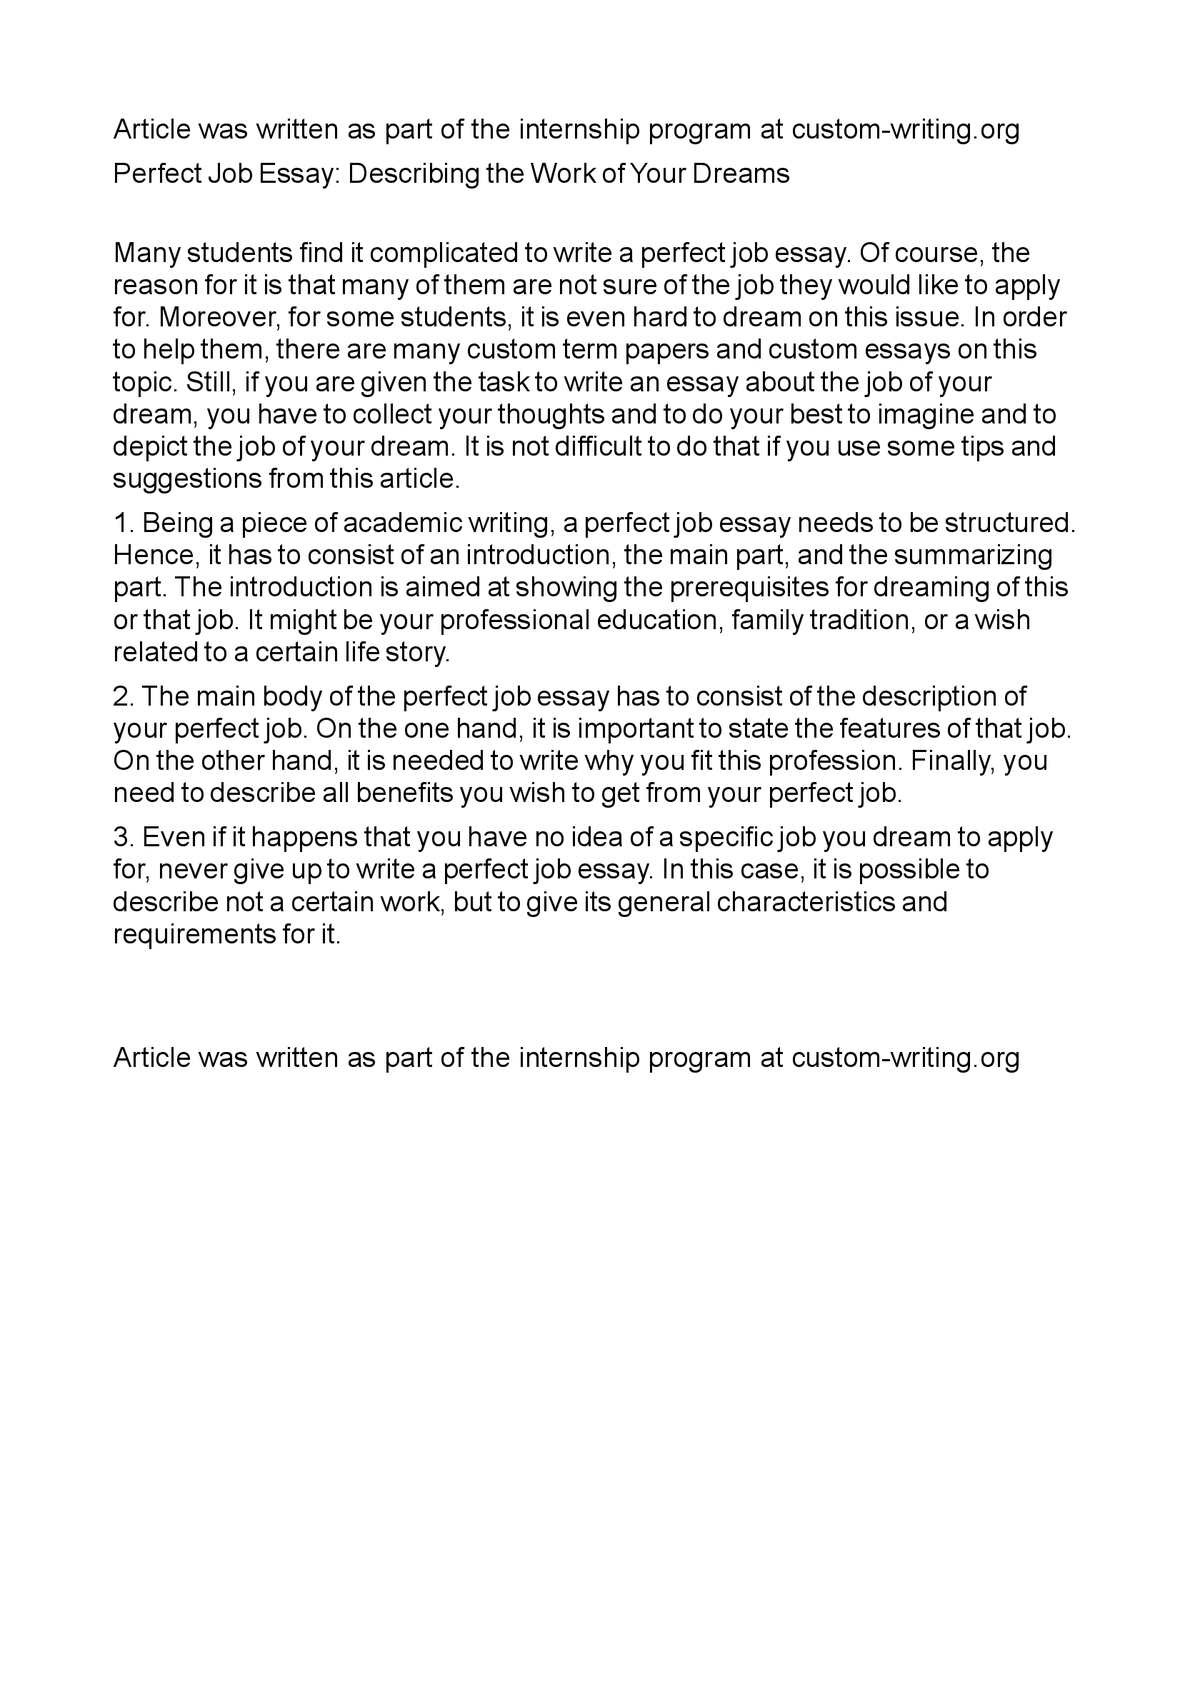 calam eacute o perfect job essay describing the work of your dreams